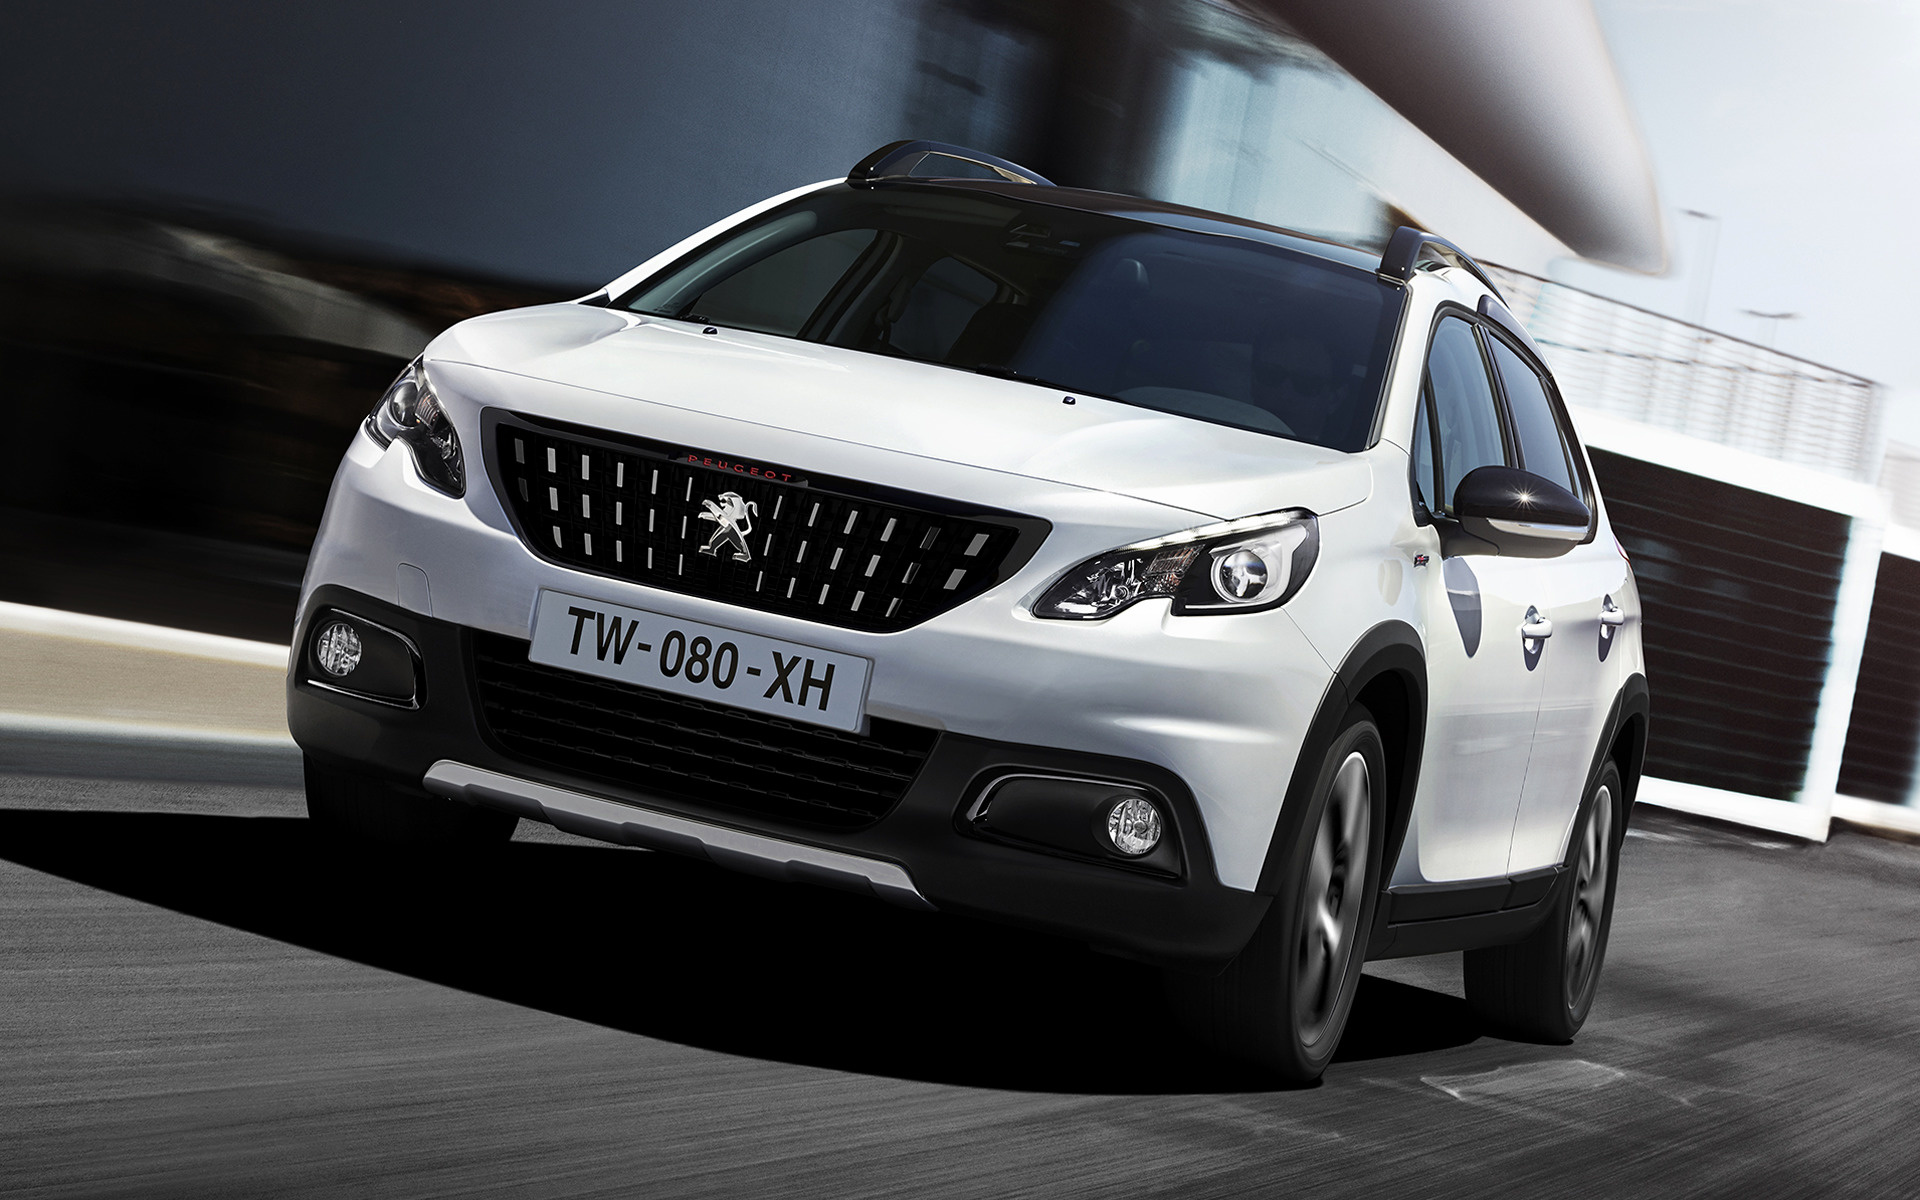 Peugeot 2008 Gt Line 2016 Wallpapers And Hd Images Car HD Wallpapers Download free images and photos [musssic.tk]